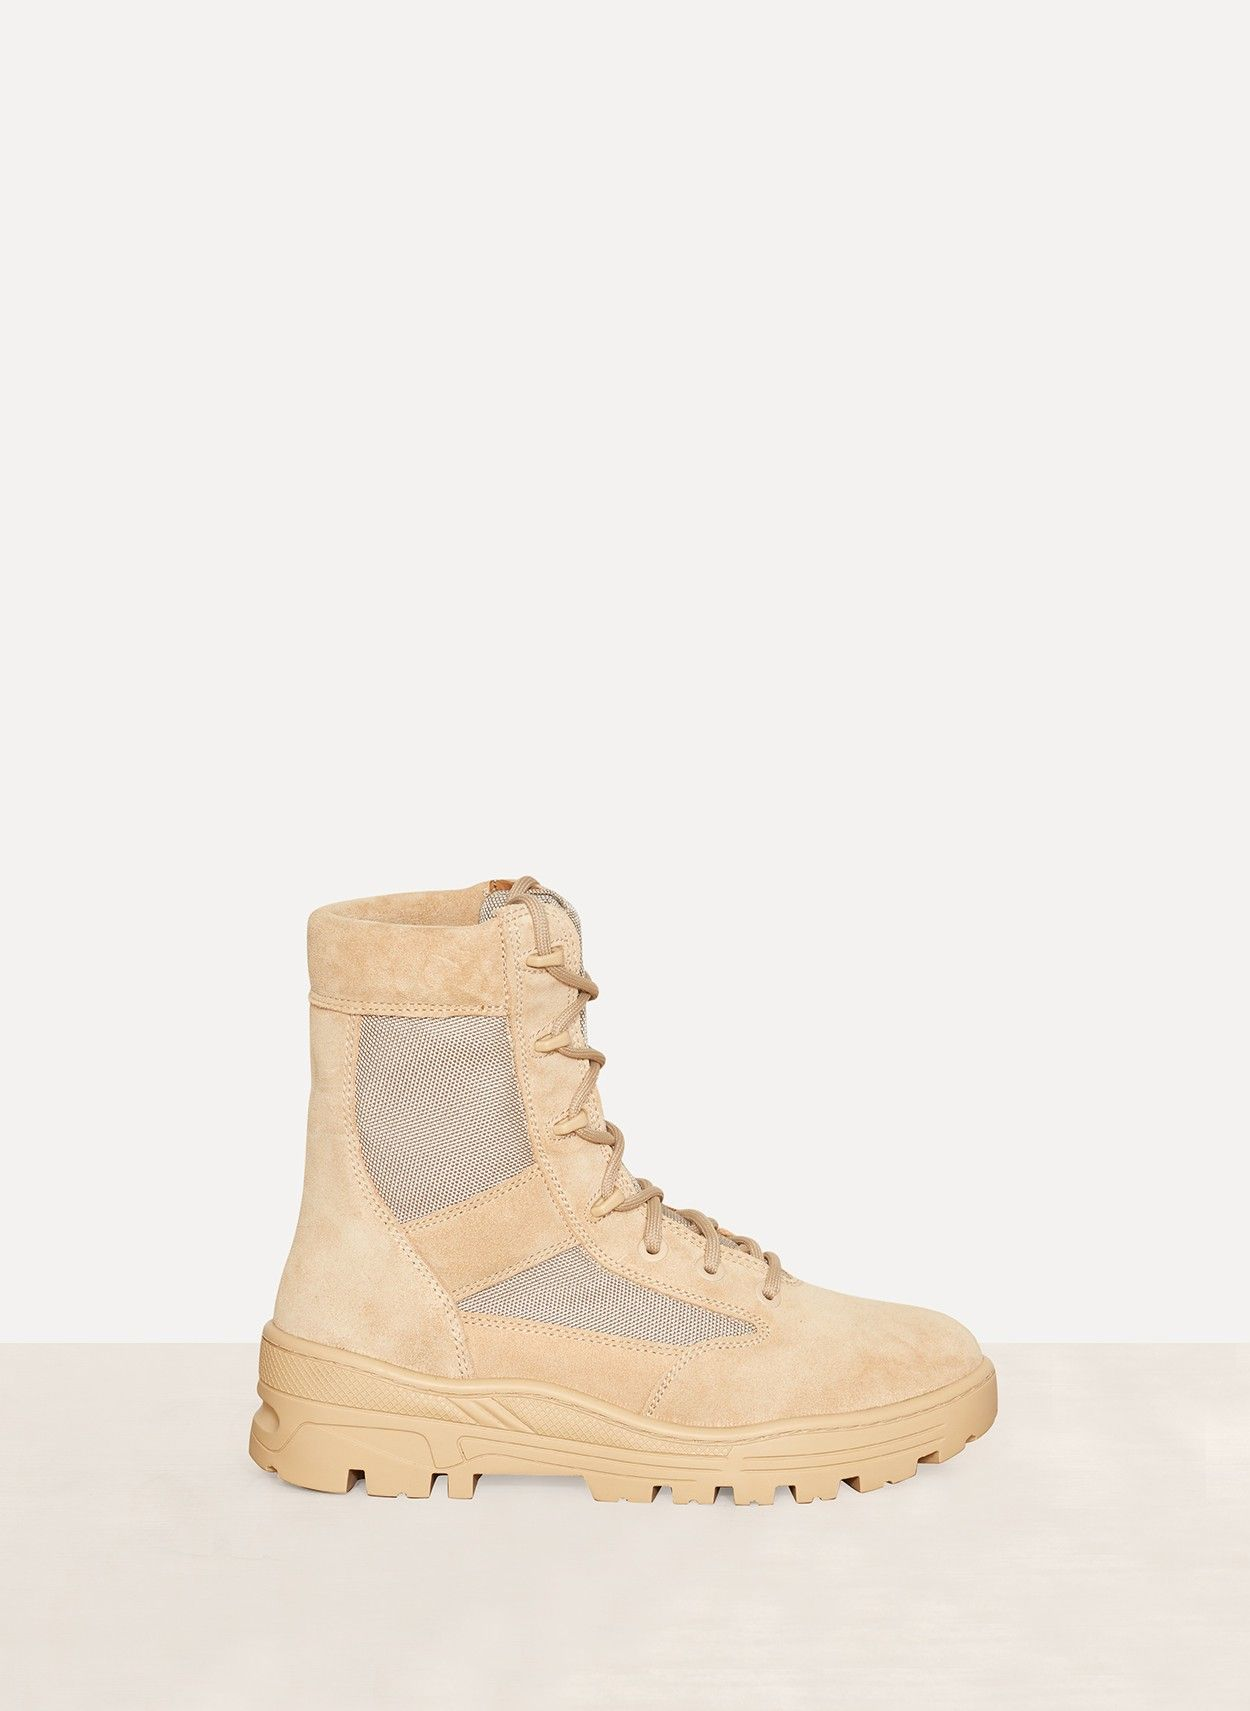 eaa99fca261e4 Crosta Light Sand Calfskin Suede Military Boot from YEEZY Season 4 ...